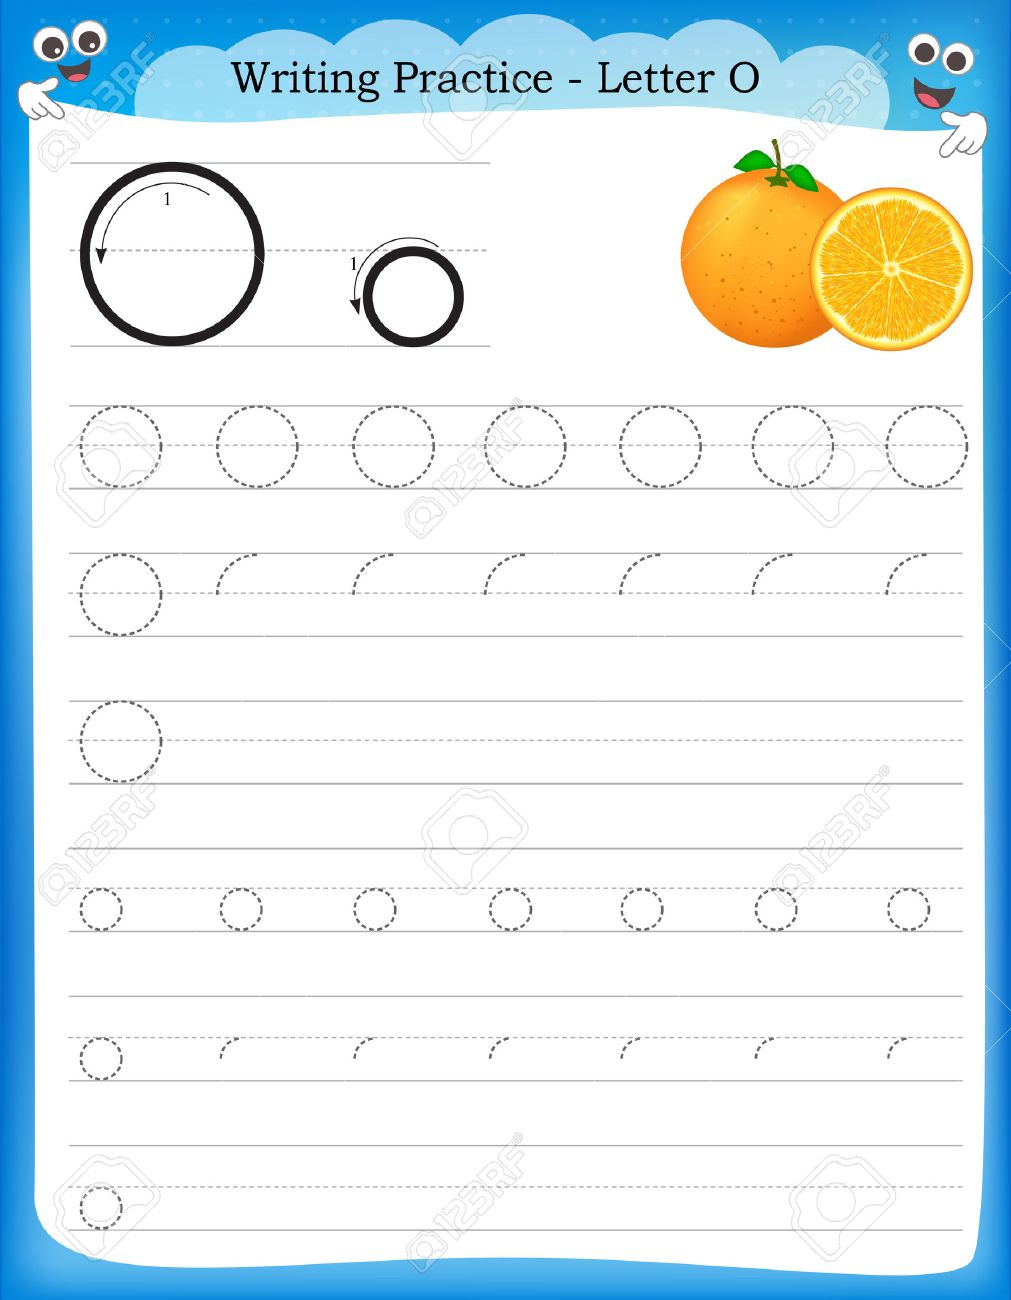 worksheet Letter O Worksheet writing practice letter o printable worksheet with clip art vector for preschool kindergarten kids to improve basic skills